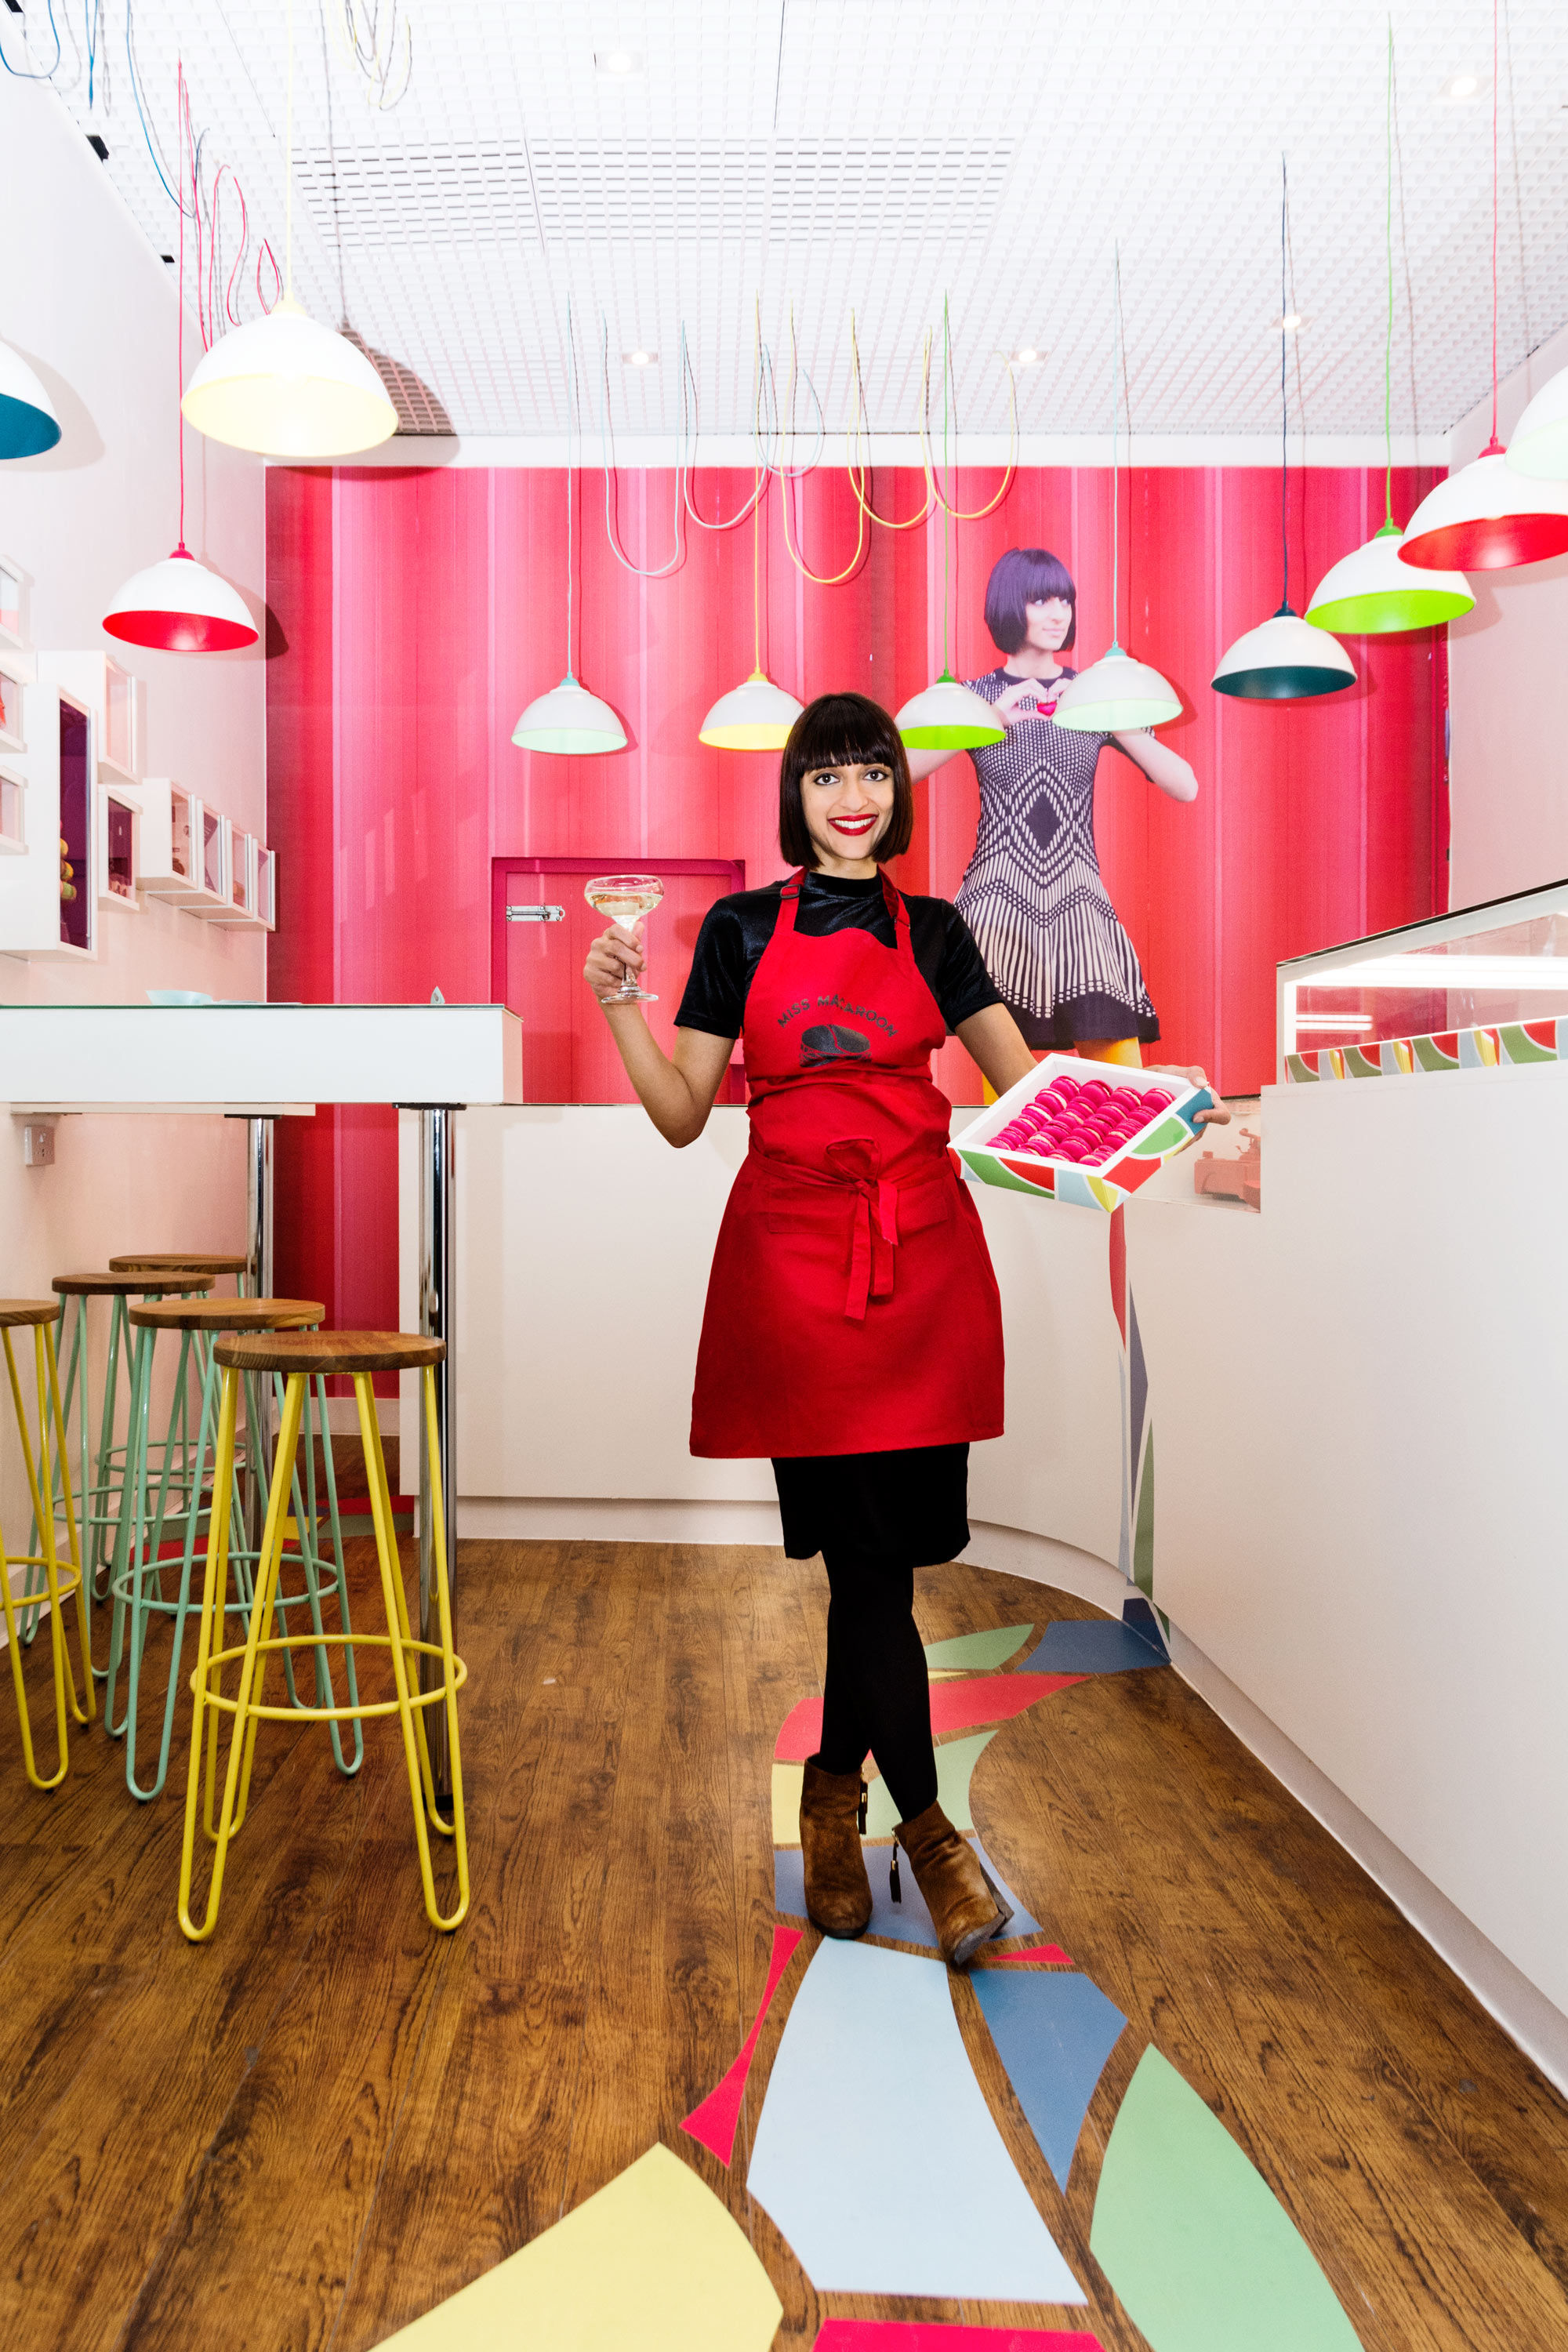 Entrepreneur Rosie Ginday, 34, who set up the social enterprise and baking business Miss Macaroon.